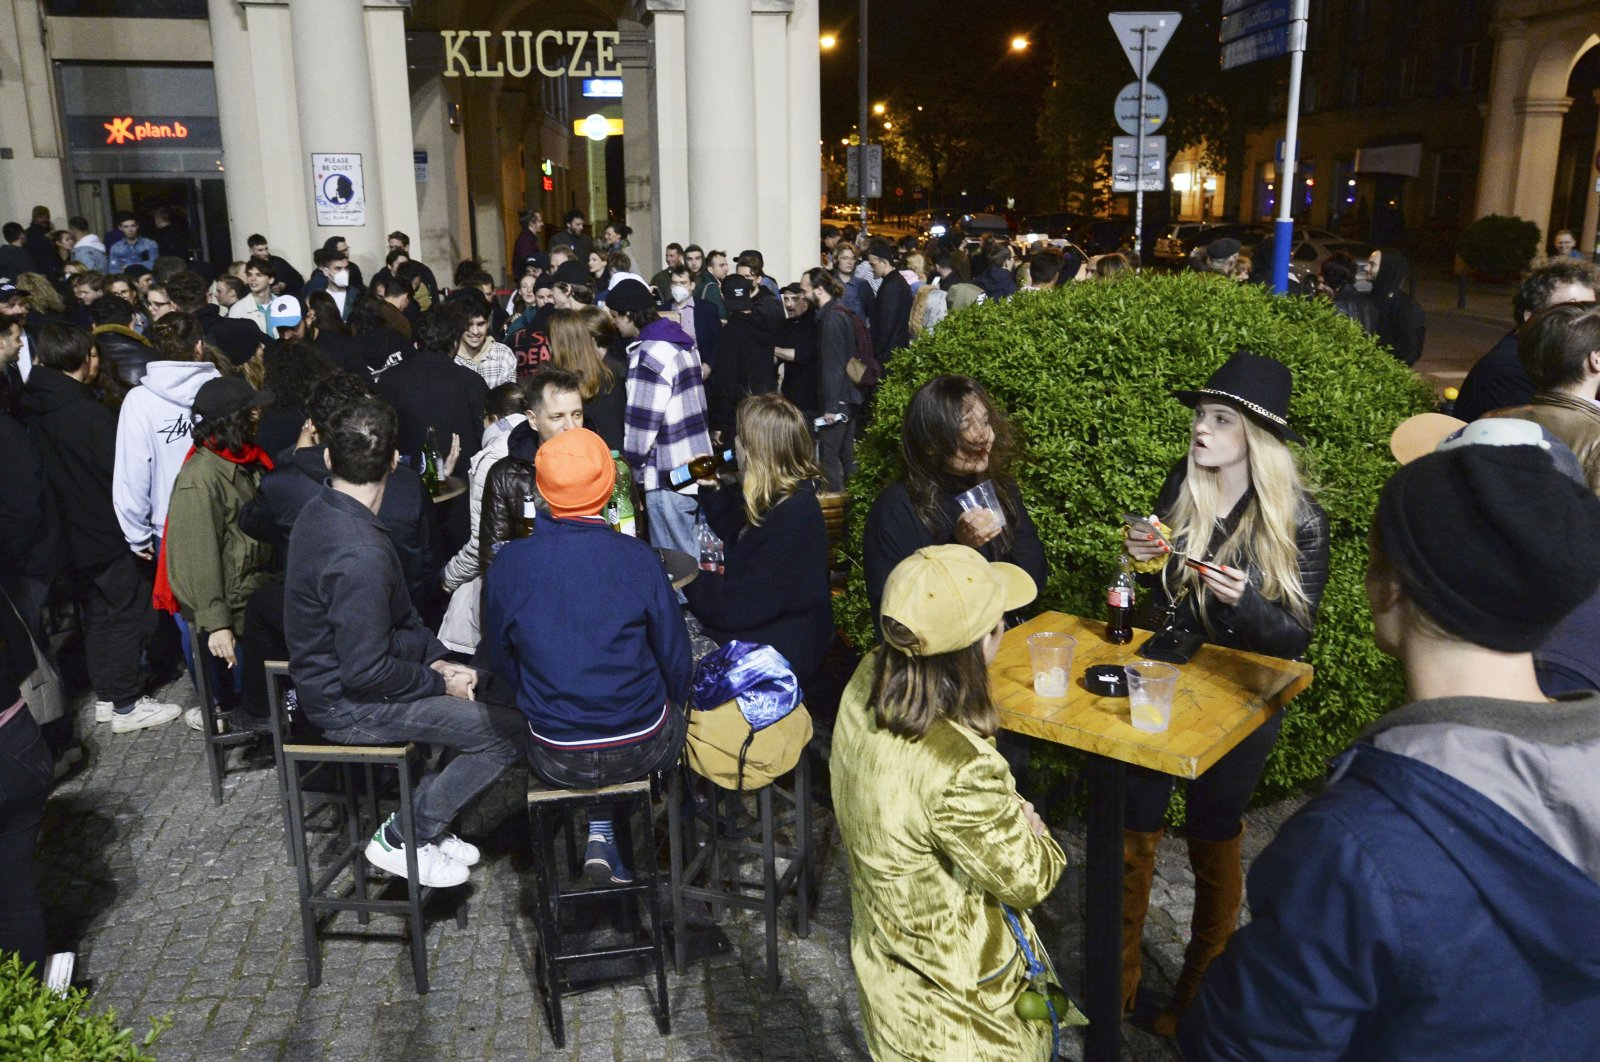 People gather and celebrate as bars, clubs and other establishments reopened in Poland after being closed for seven months, in Warsaw, Poland, May 14, 2021. (AP Photo)